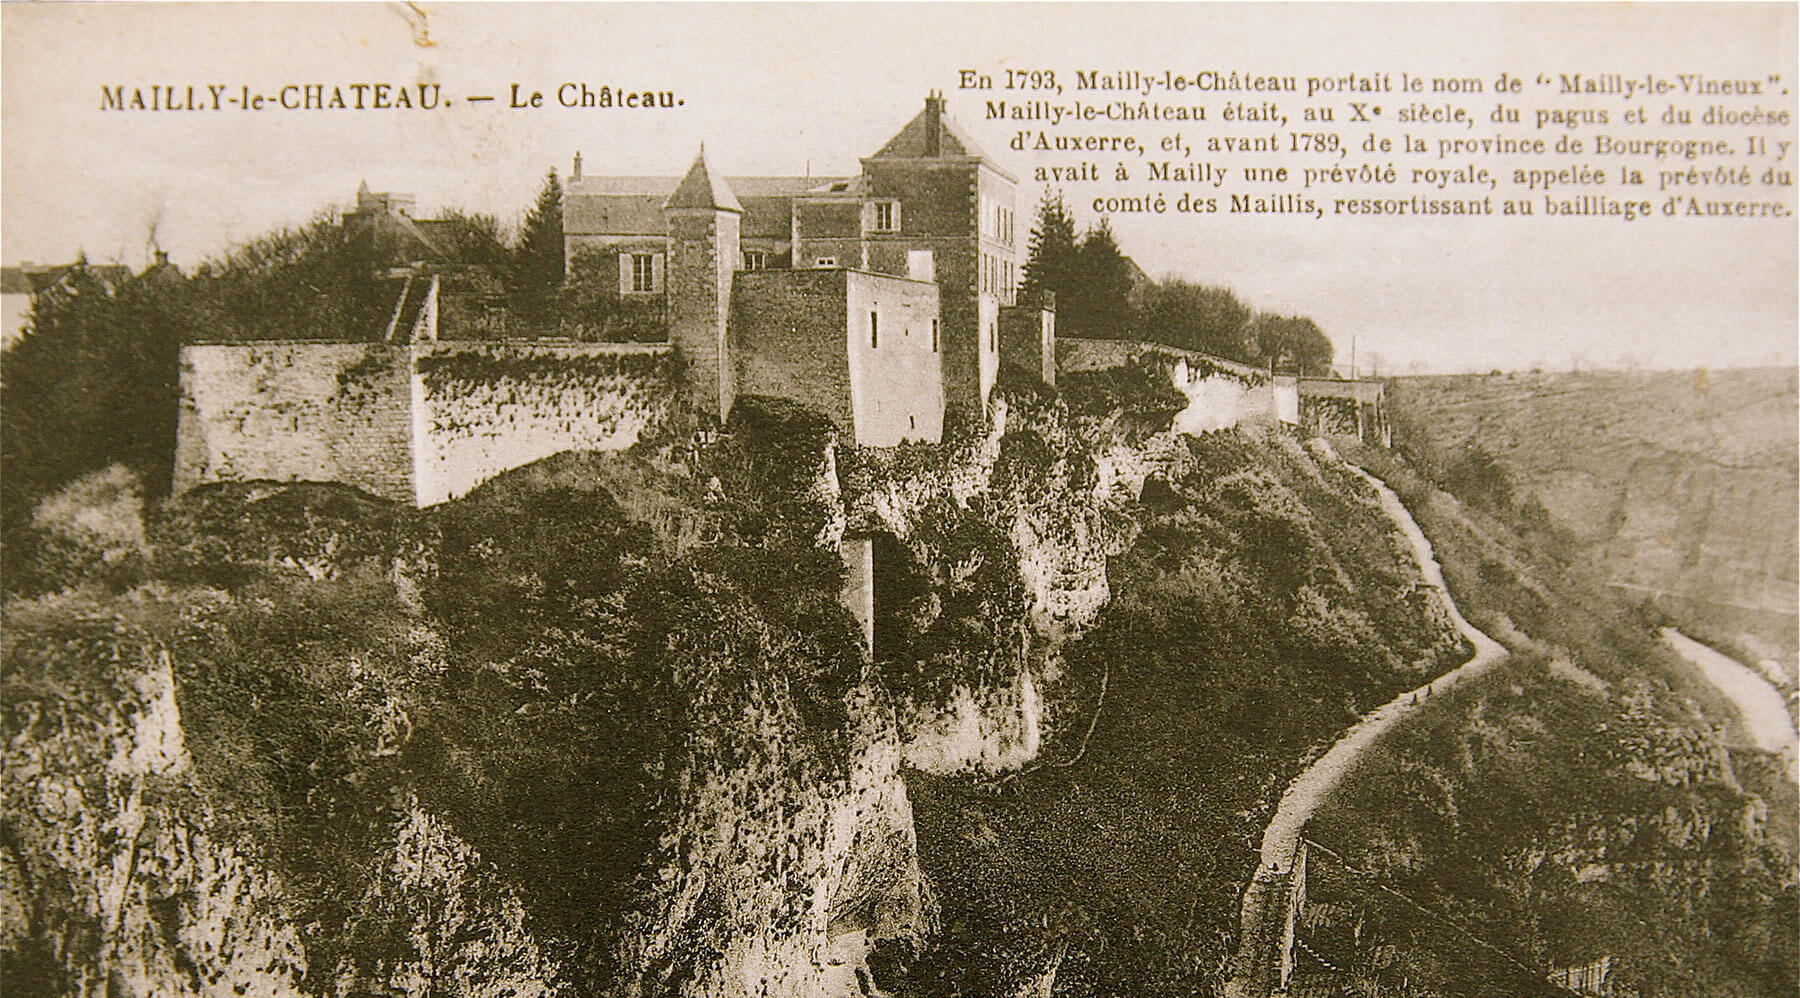 History of Chateau de Mailly